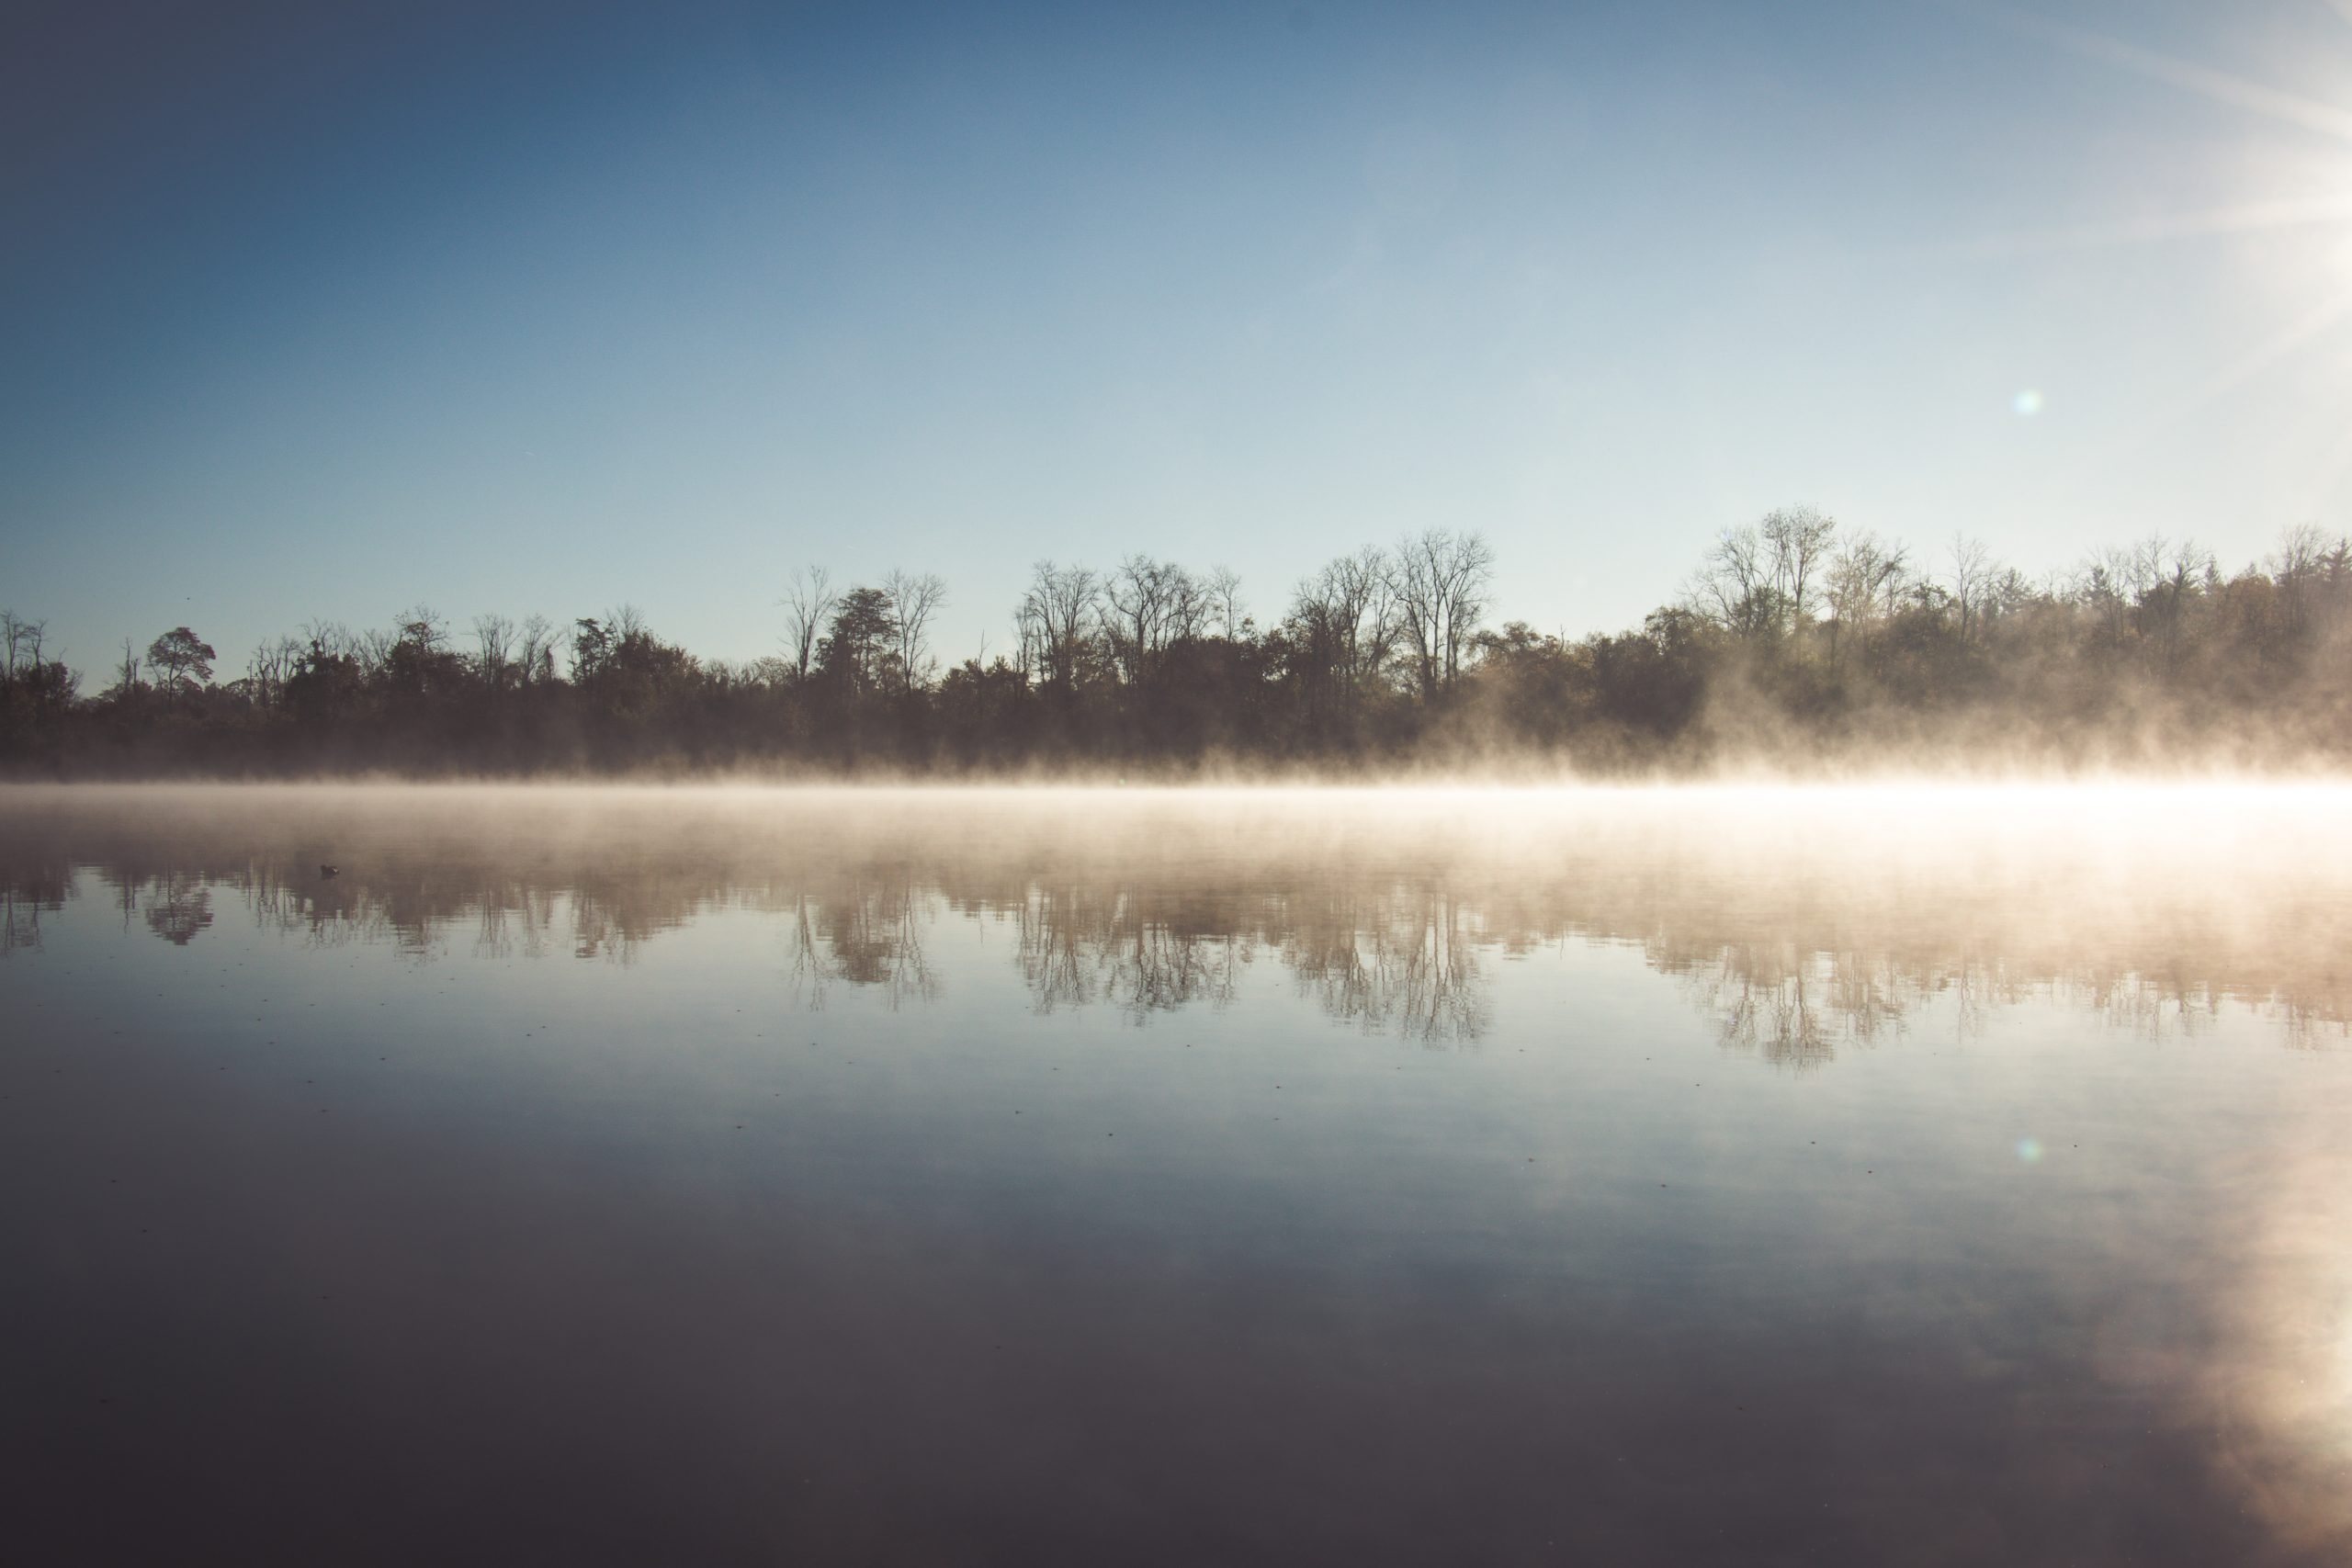 The sun shines over Winton Lake. The reflection of the trees lining the lake are seen on the water surface. There is fog permeating from the surface of the water.